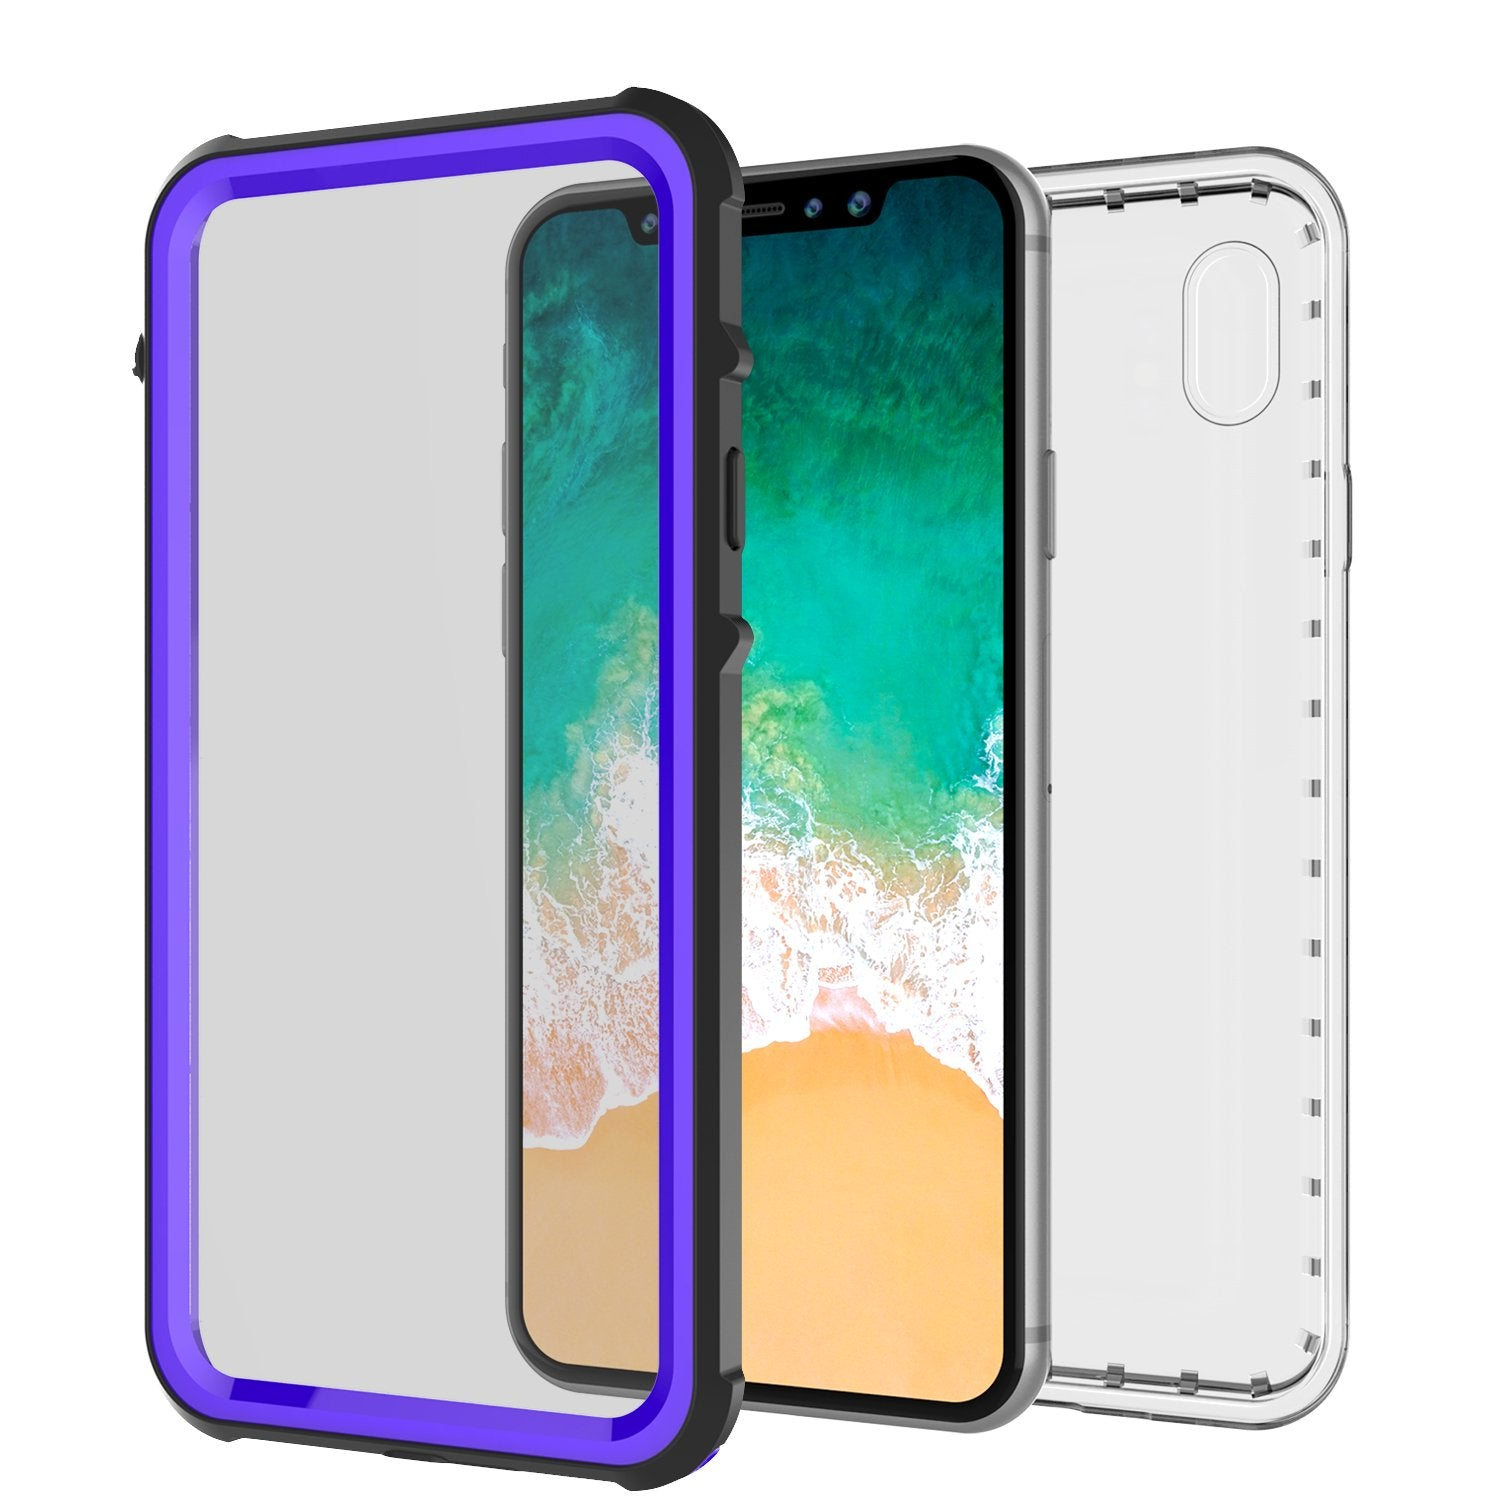 iPhone X Case, PUNKCase [CRYSTAL SERIES] Protective IP68 Certified Cover W/ Attached Screen Protector [PURPLE]